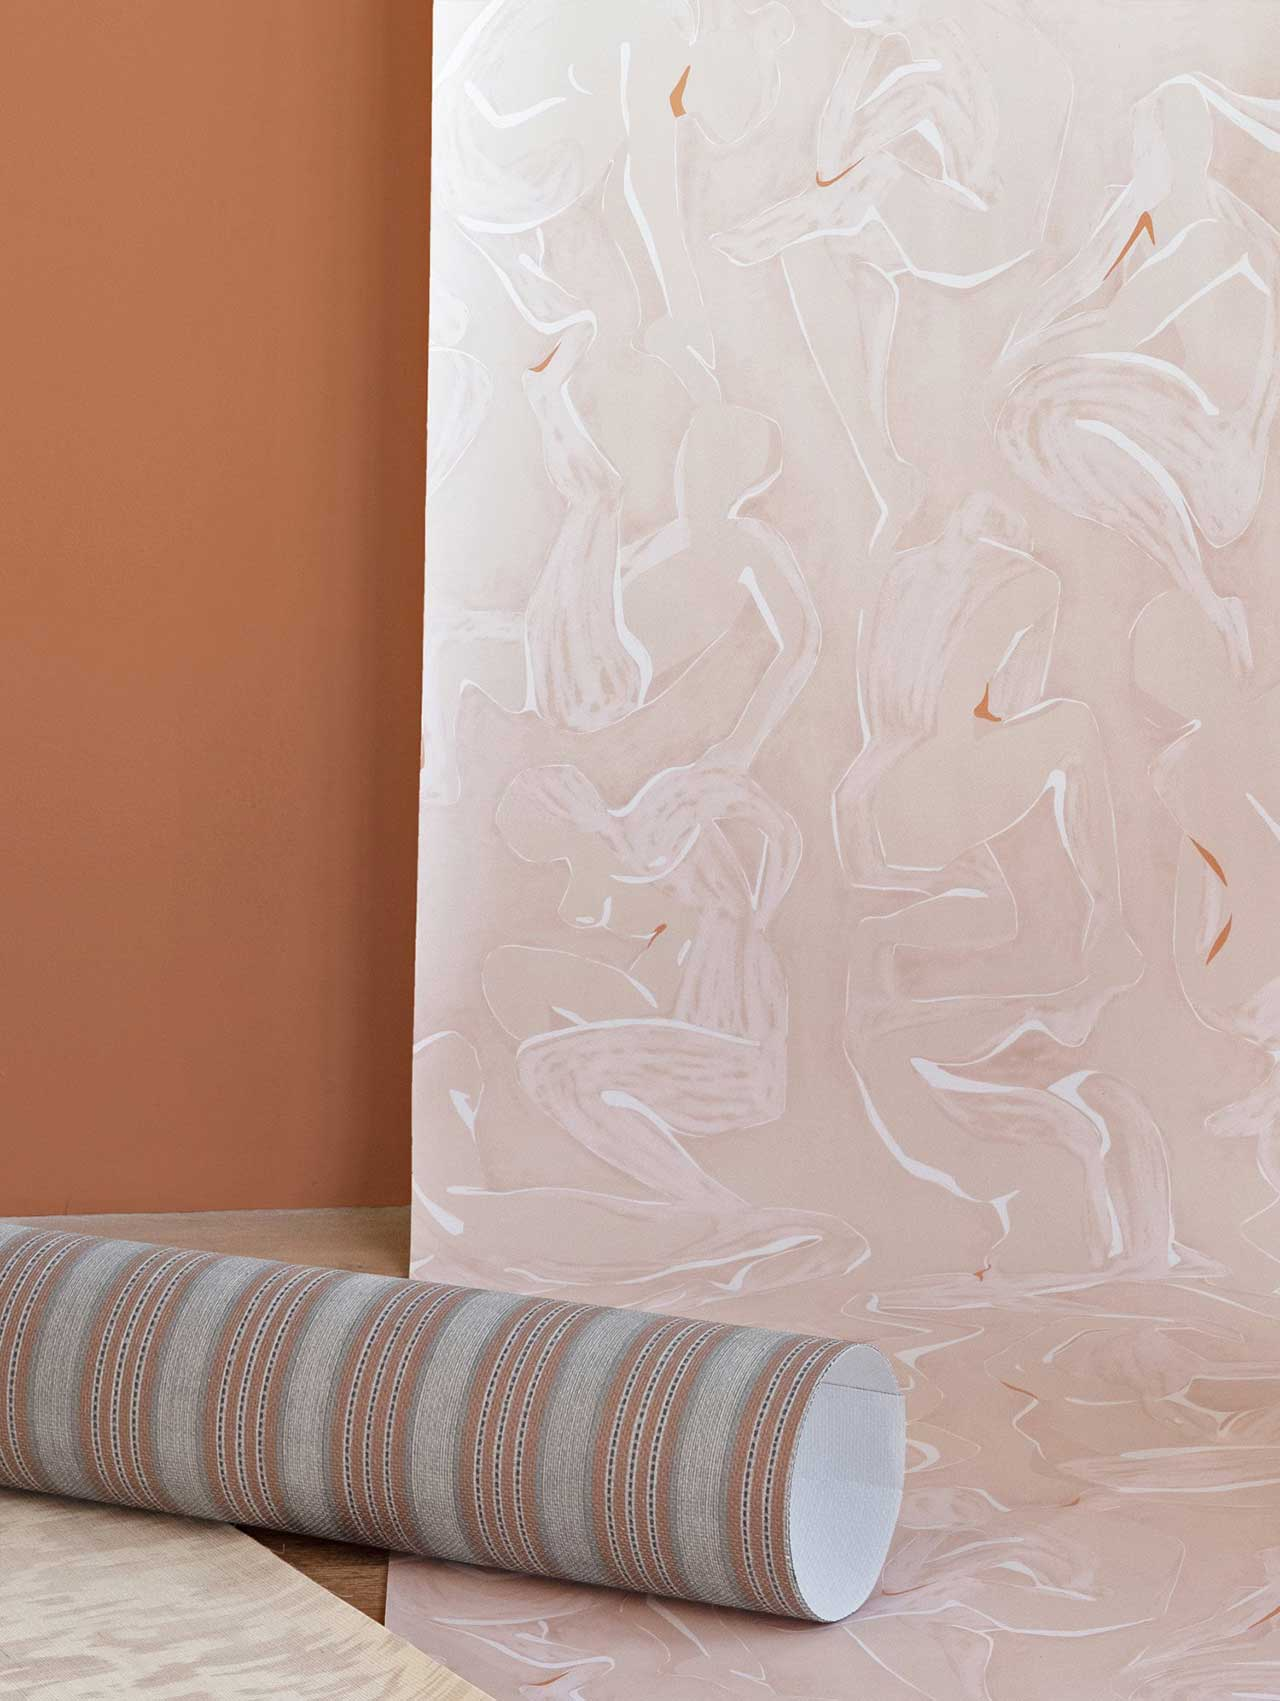 wallpaper sample of pink abstract wallpaper hanging on wall